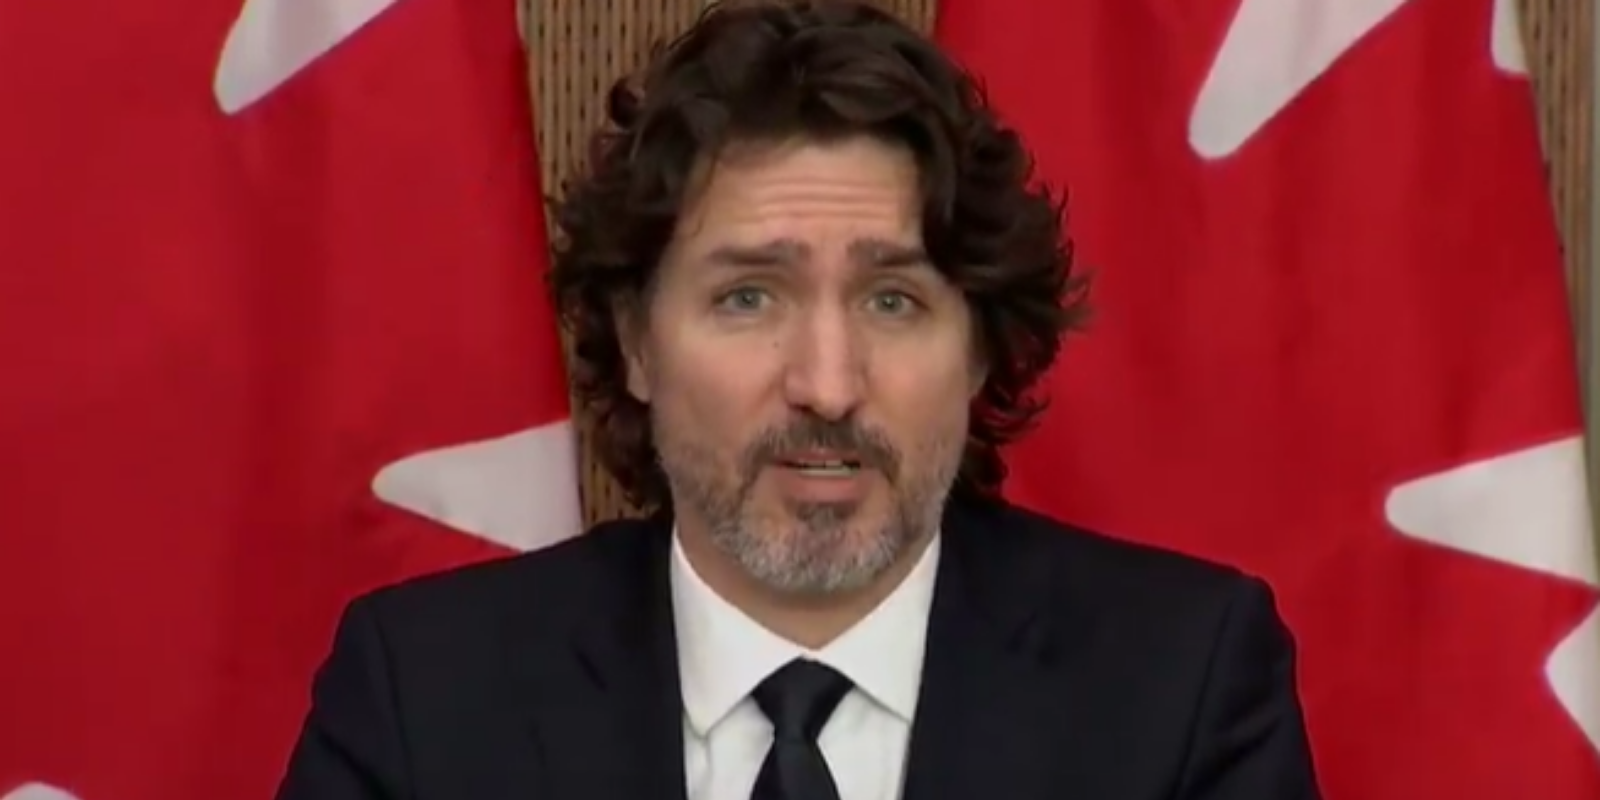 BREAKING: Trudeau Liberals unveil plan to buy back 'assault-style' weapons